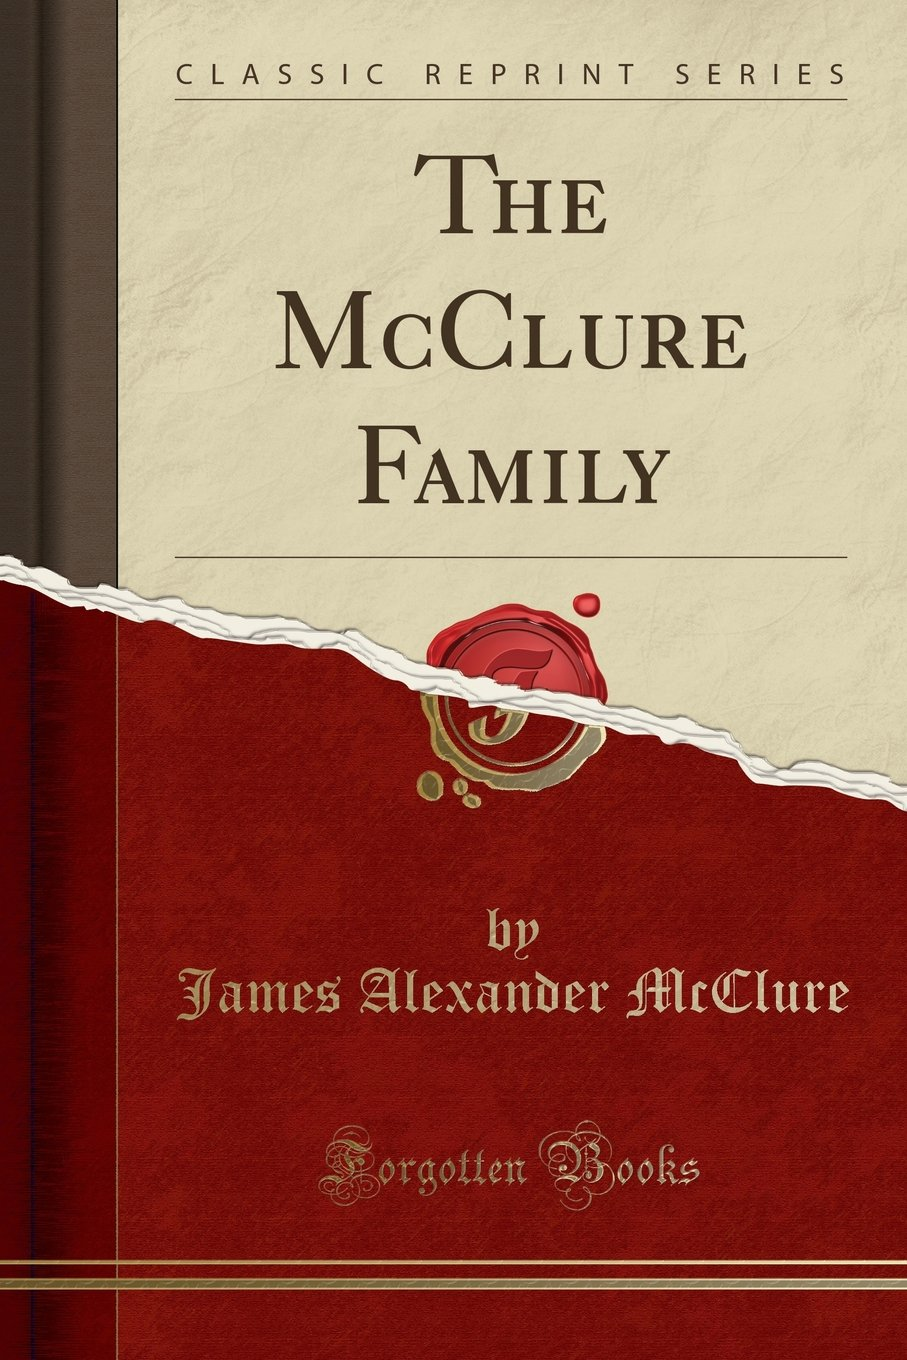 The McClure Family (Classic Reprint): James Alexander McClure:  9781331127611: Amazon.com: Books